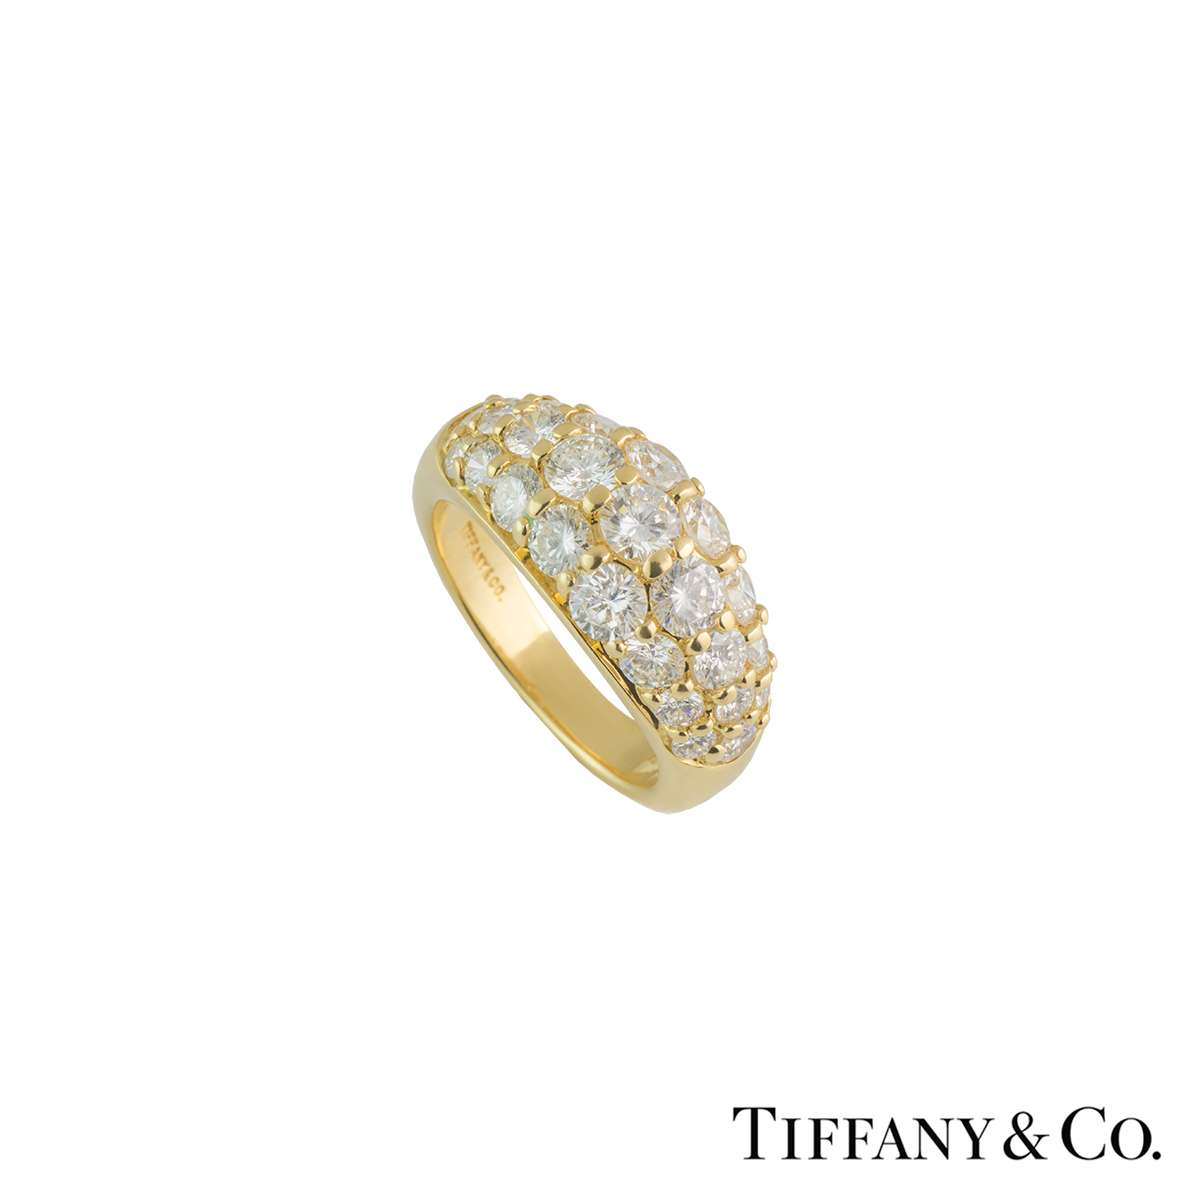 Tiffany & Co Diamond Bombe Ring 2.20ct